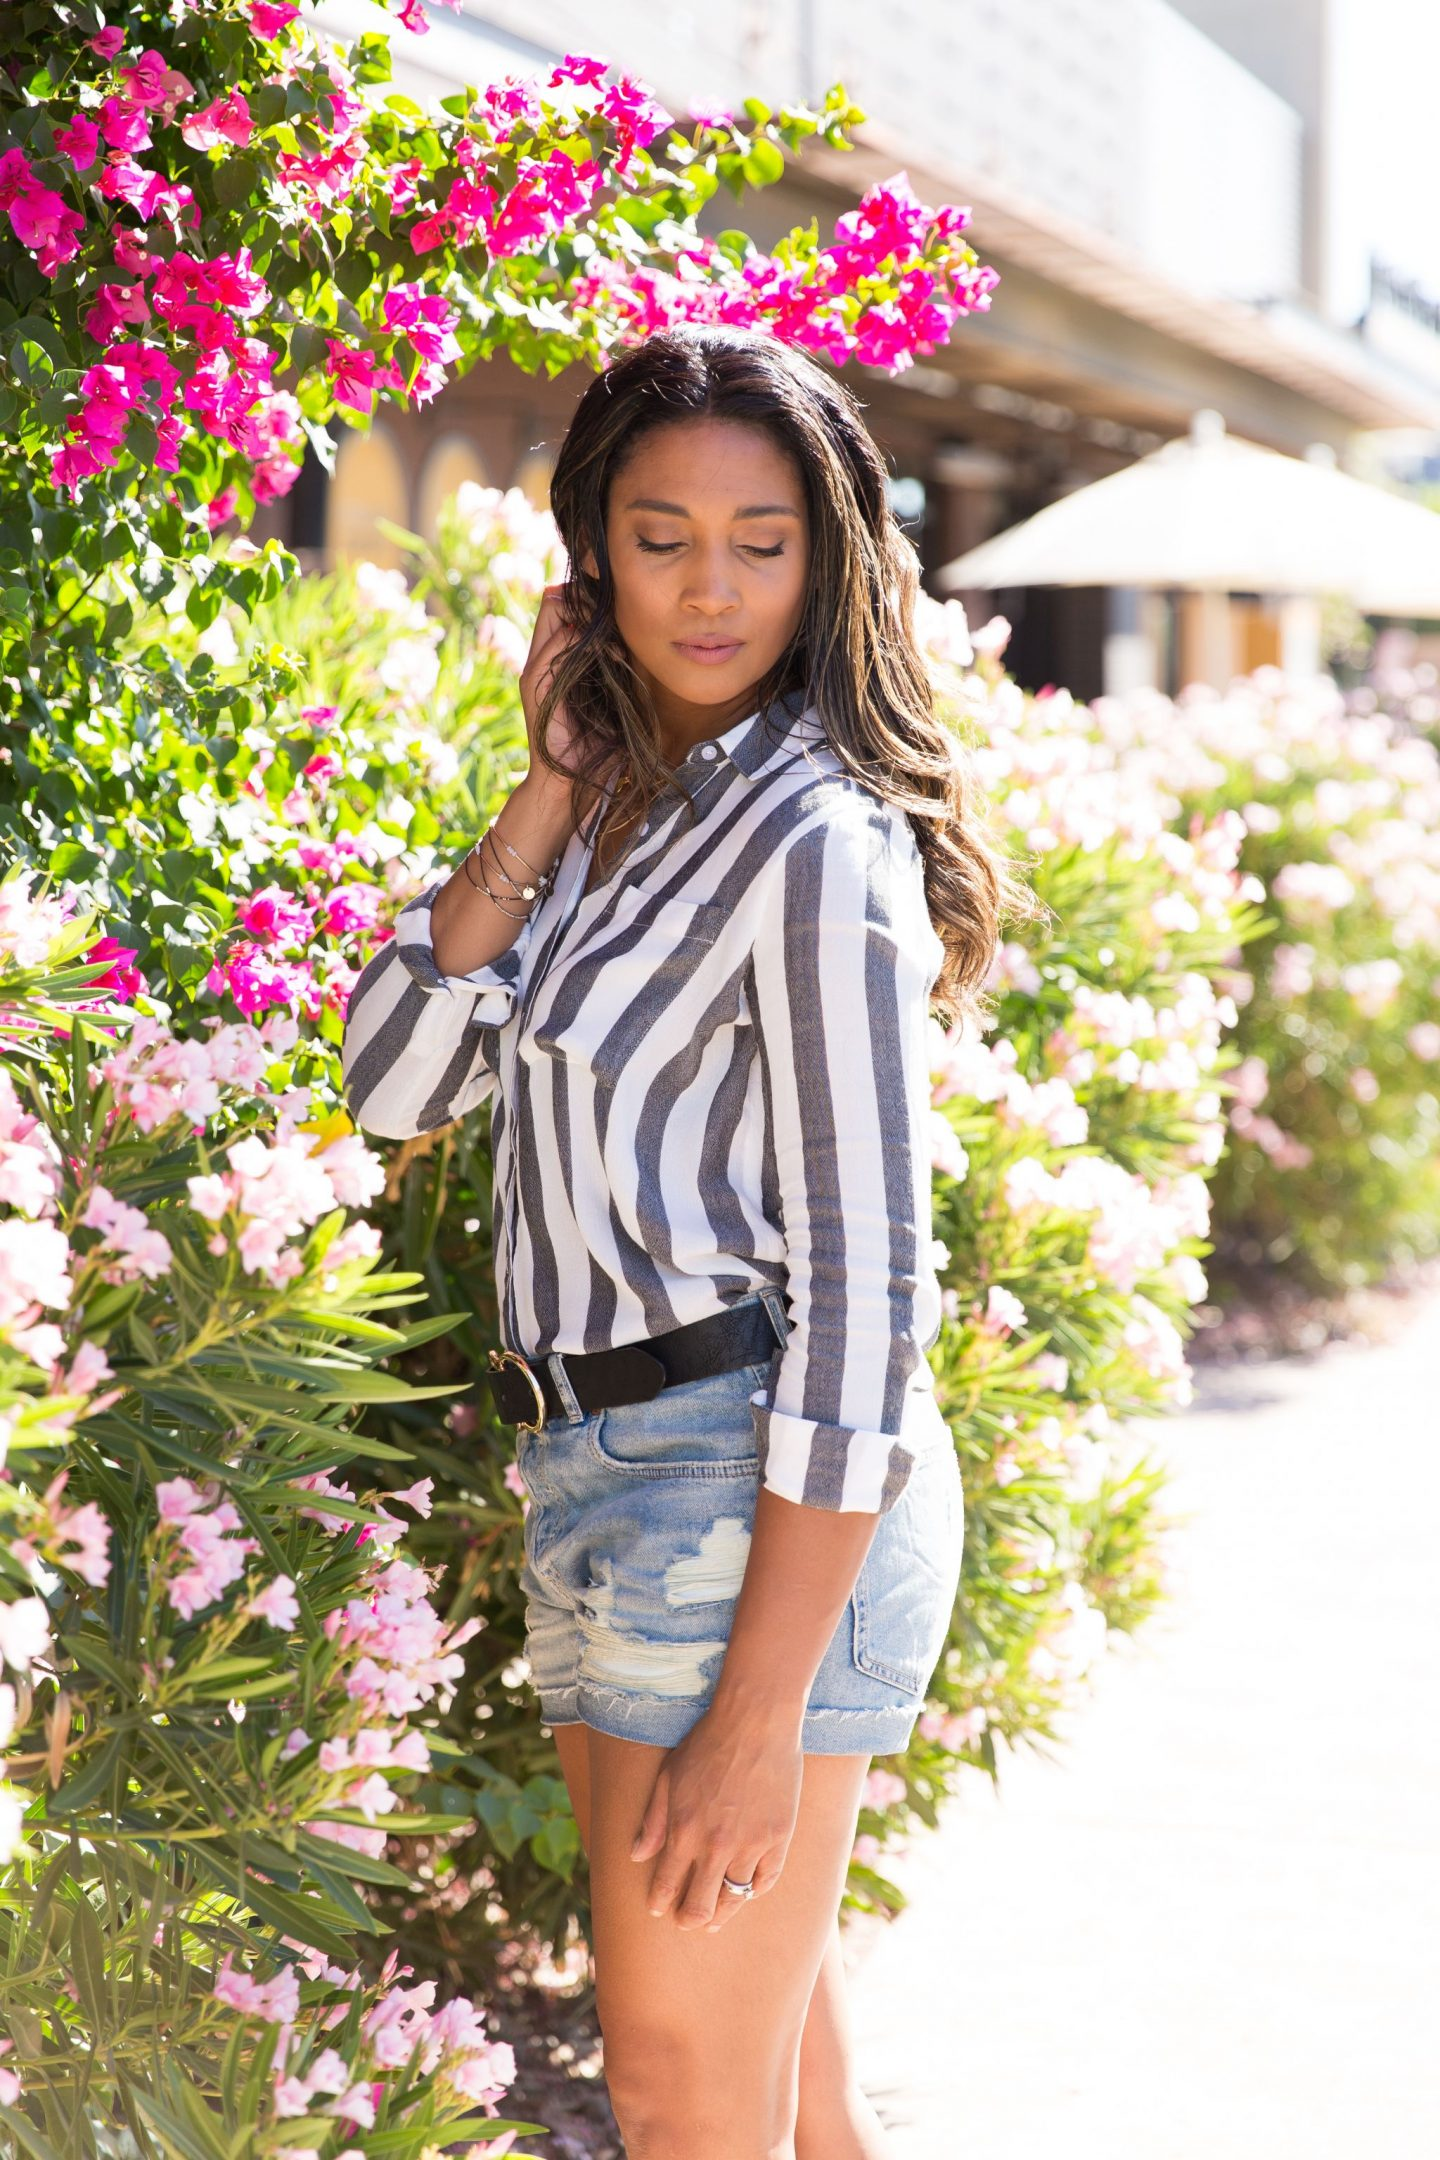 FALL OUTFIT, WHAT TO WEAR, CUTE STRIPED SHIRT, WHAT TO WEAR, OUTFIT INSPO